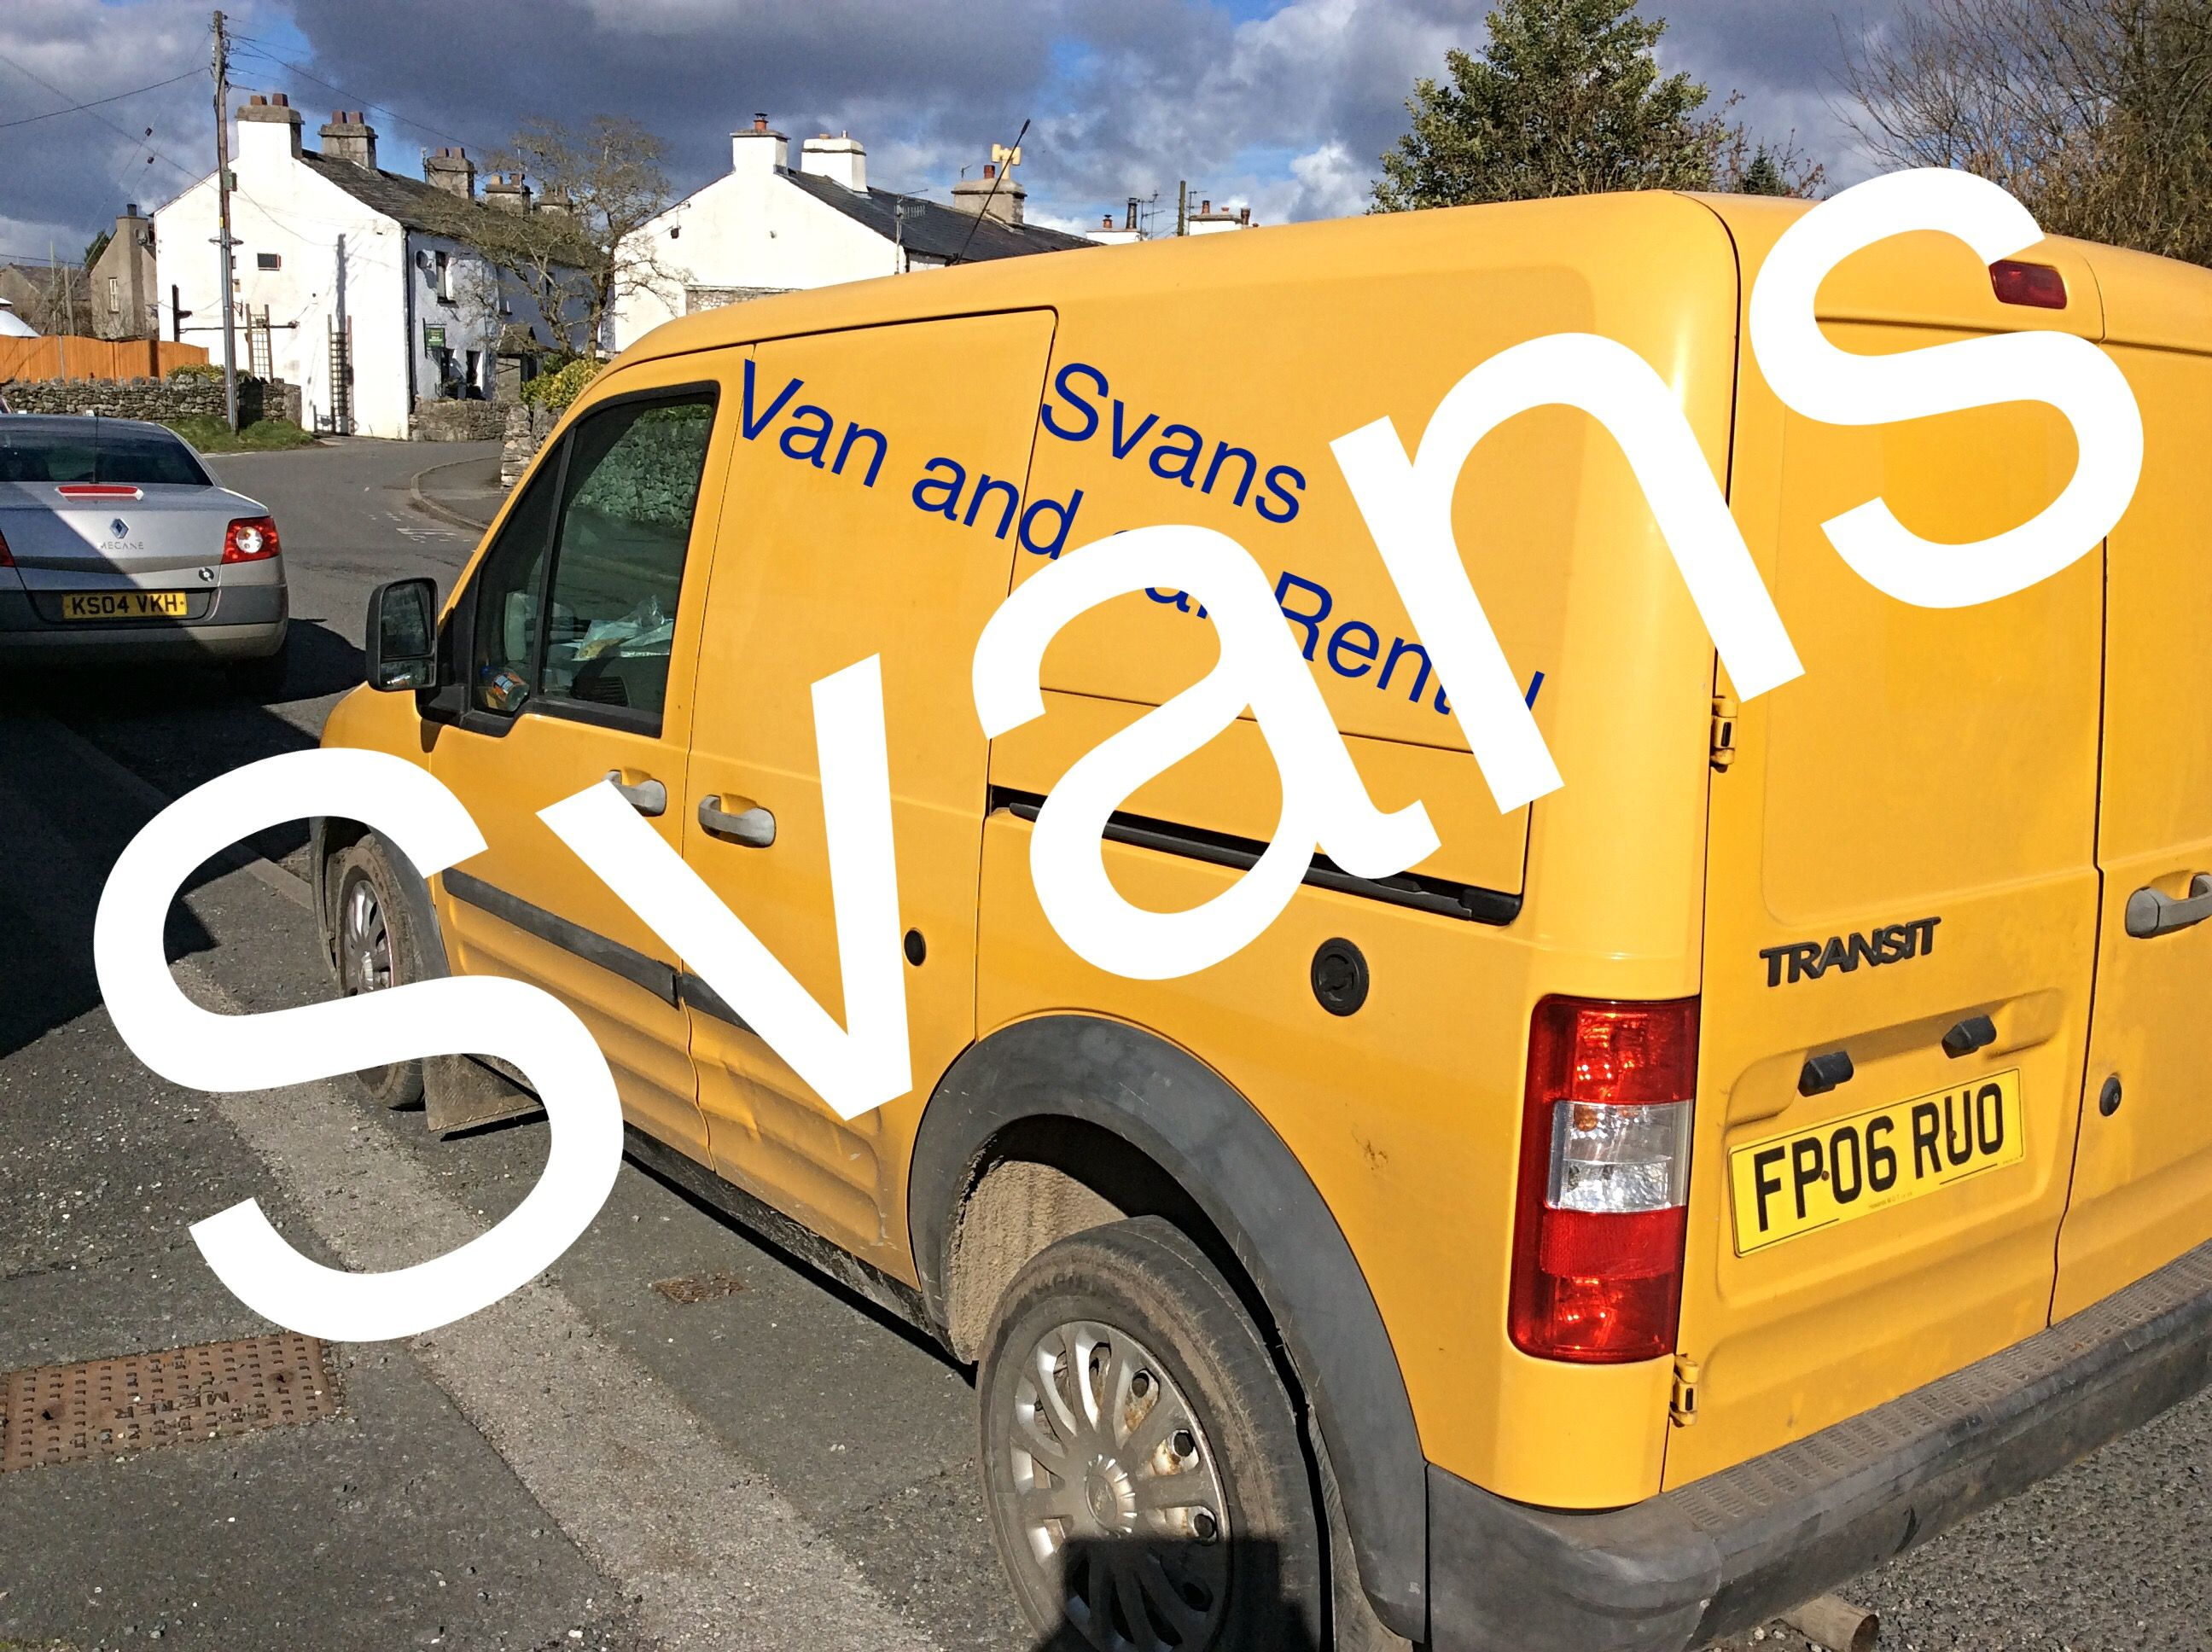 347d7c5798 Find this Pin and more on Svans Van And Car Rental Centre by svanvanhire.